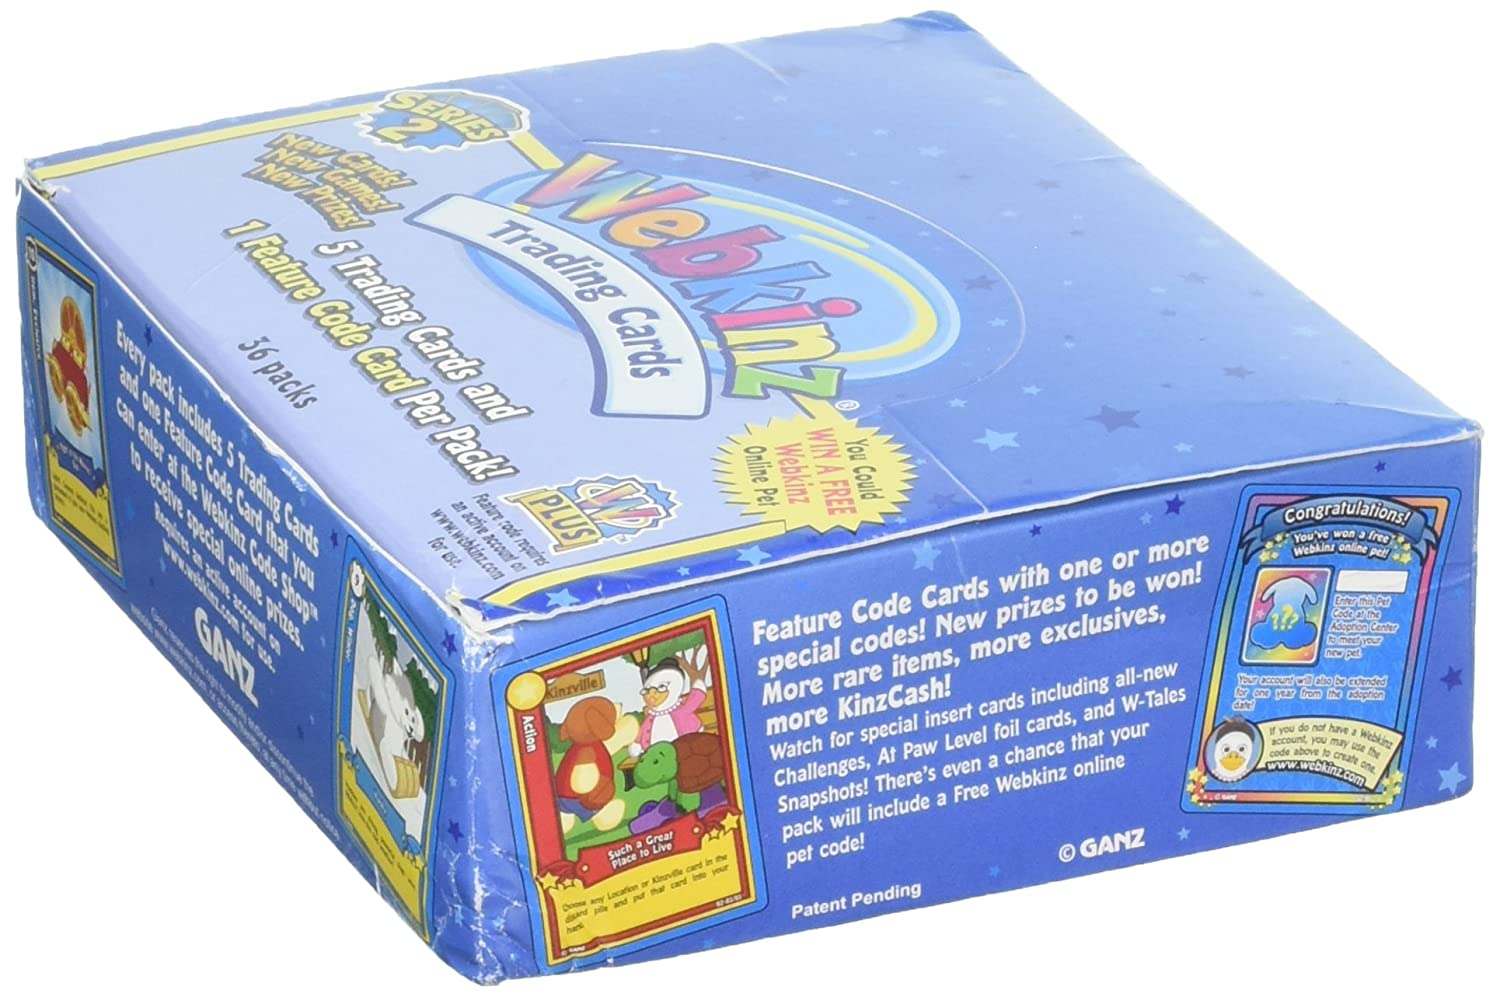 Webkinz series 3 prizes for students